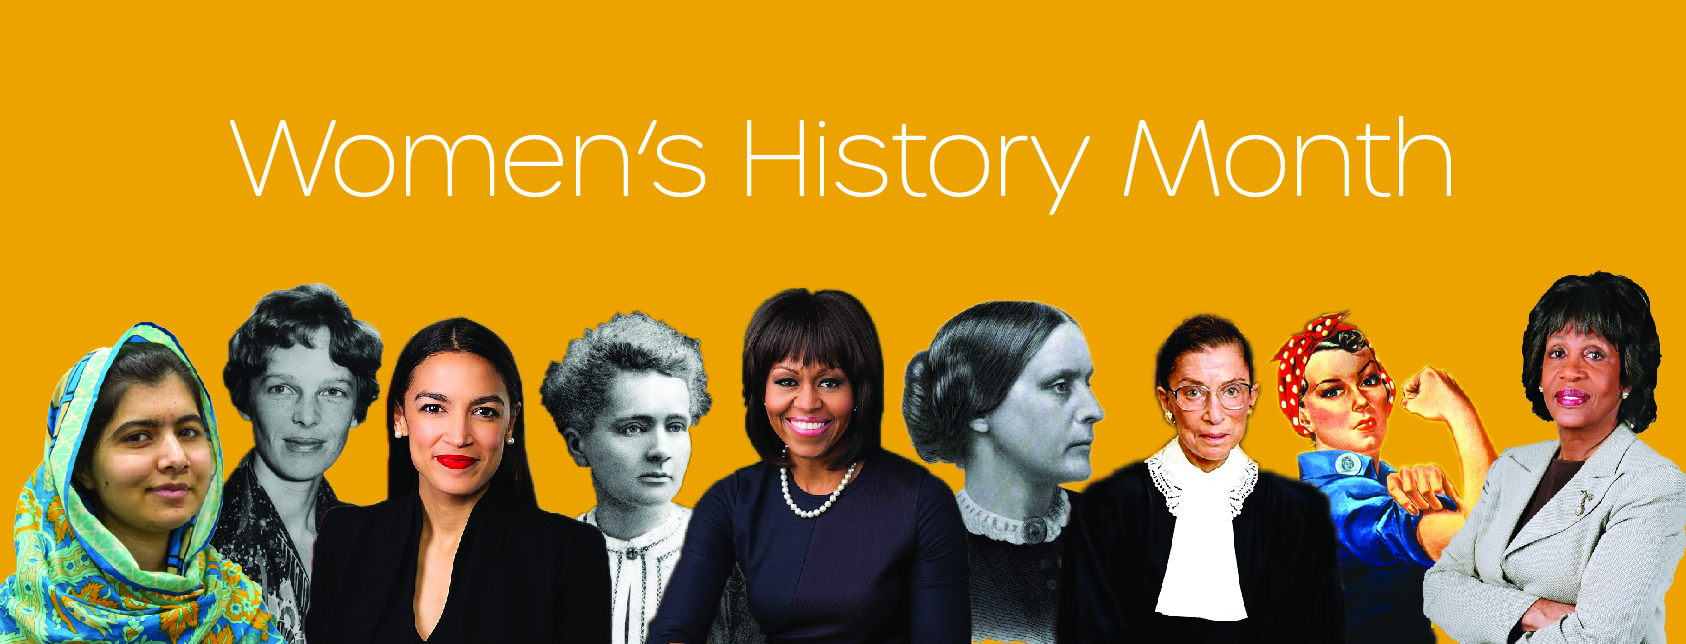 Women's History Month at The University of Akron